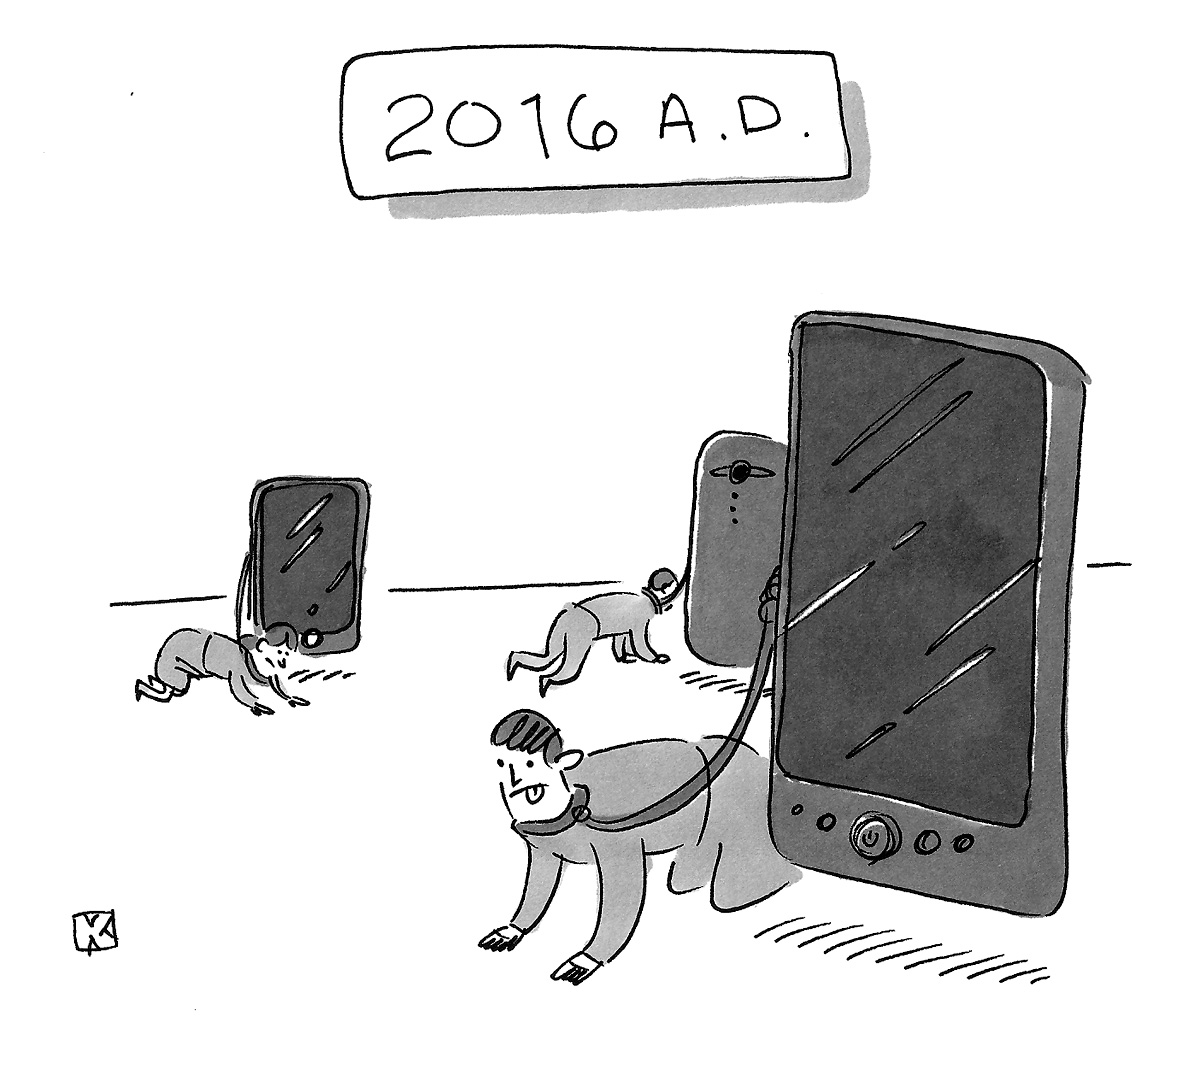 (Smartphones are walking people on leashes: '2016 A.D.')